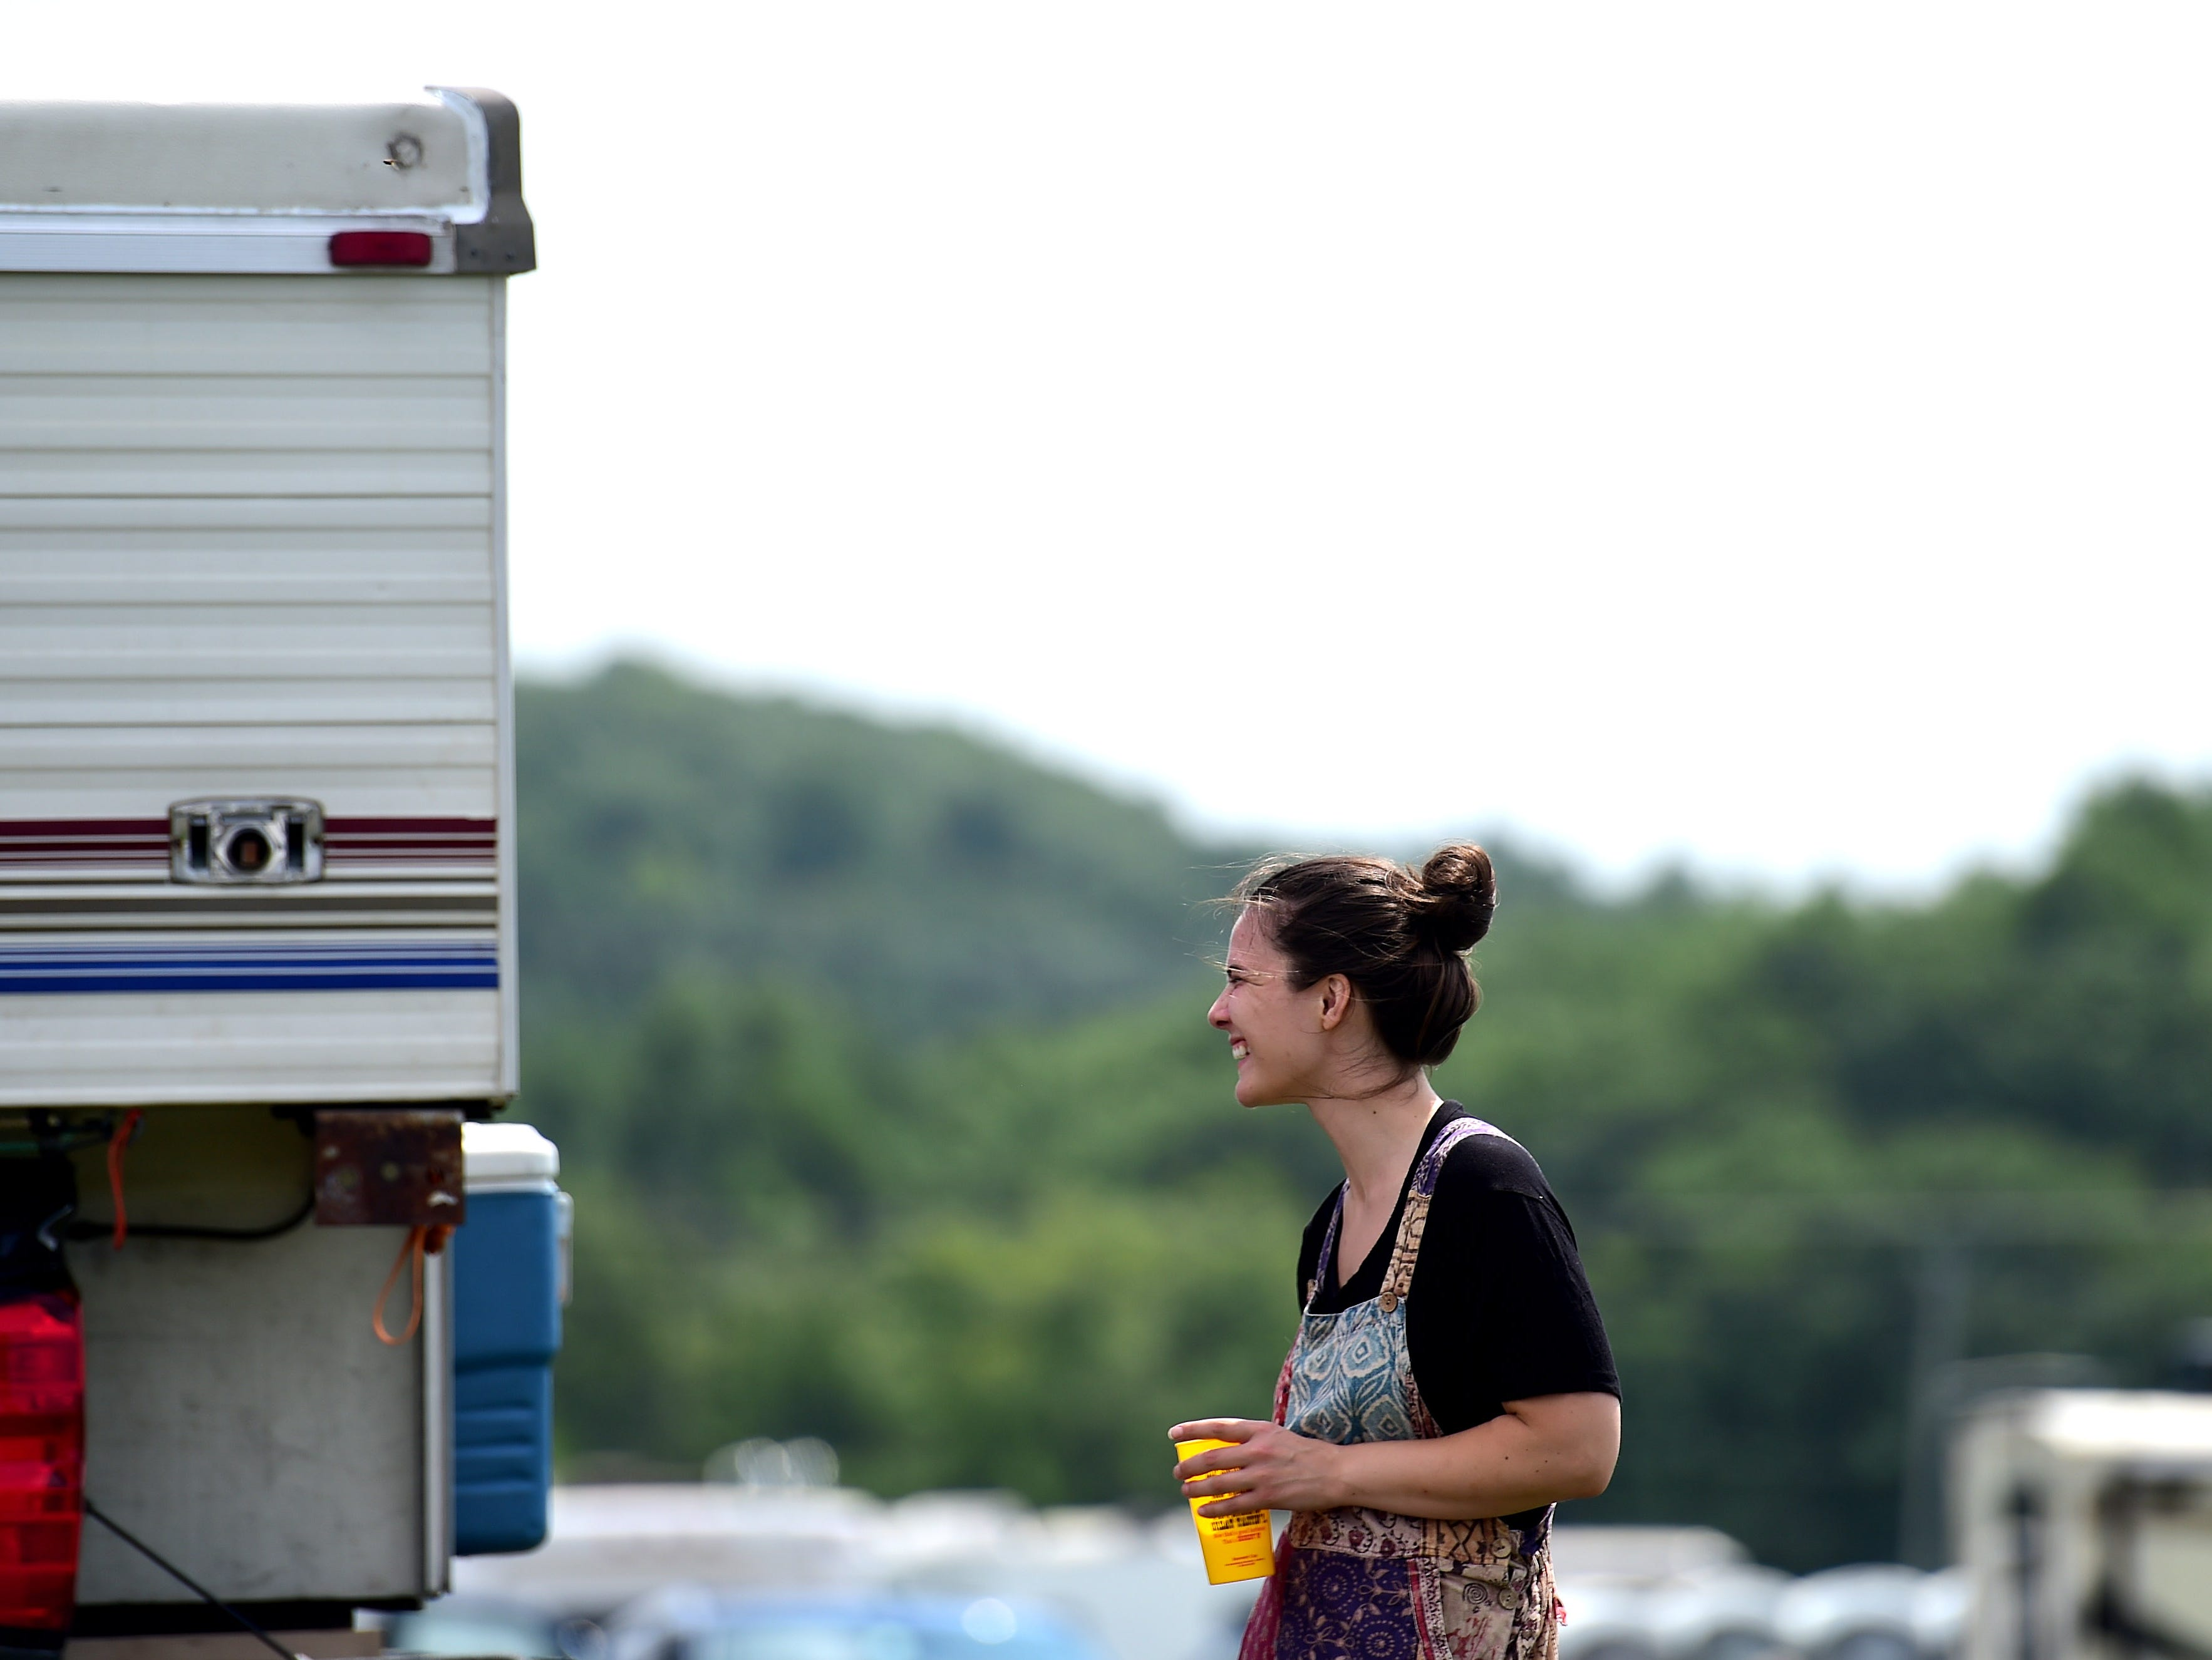 Stephanie Balfoort of Rochester gets ready to leave Watkins Glen International on Friday, August 17, 2018. The three-day Curveball Festival was cancelled on Thursday night due to water quality issues on the site.